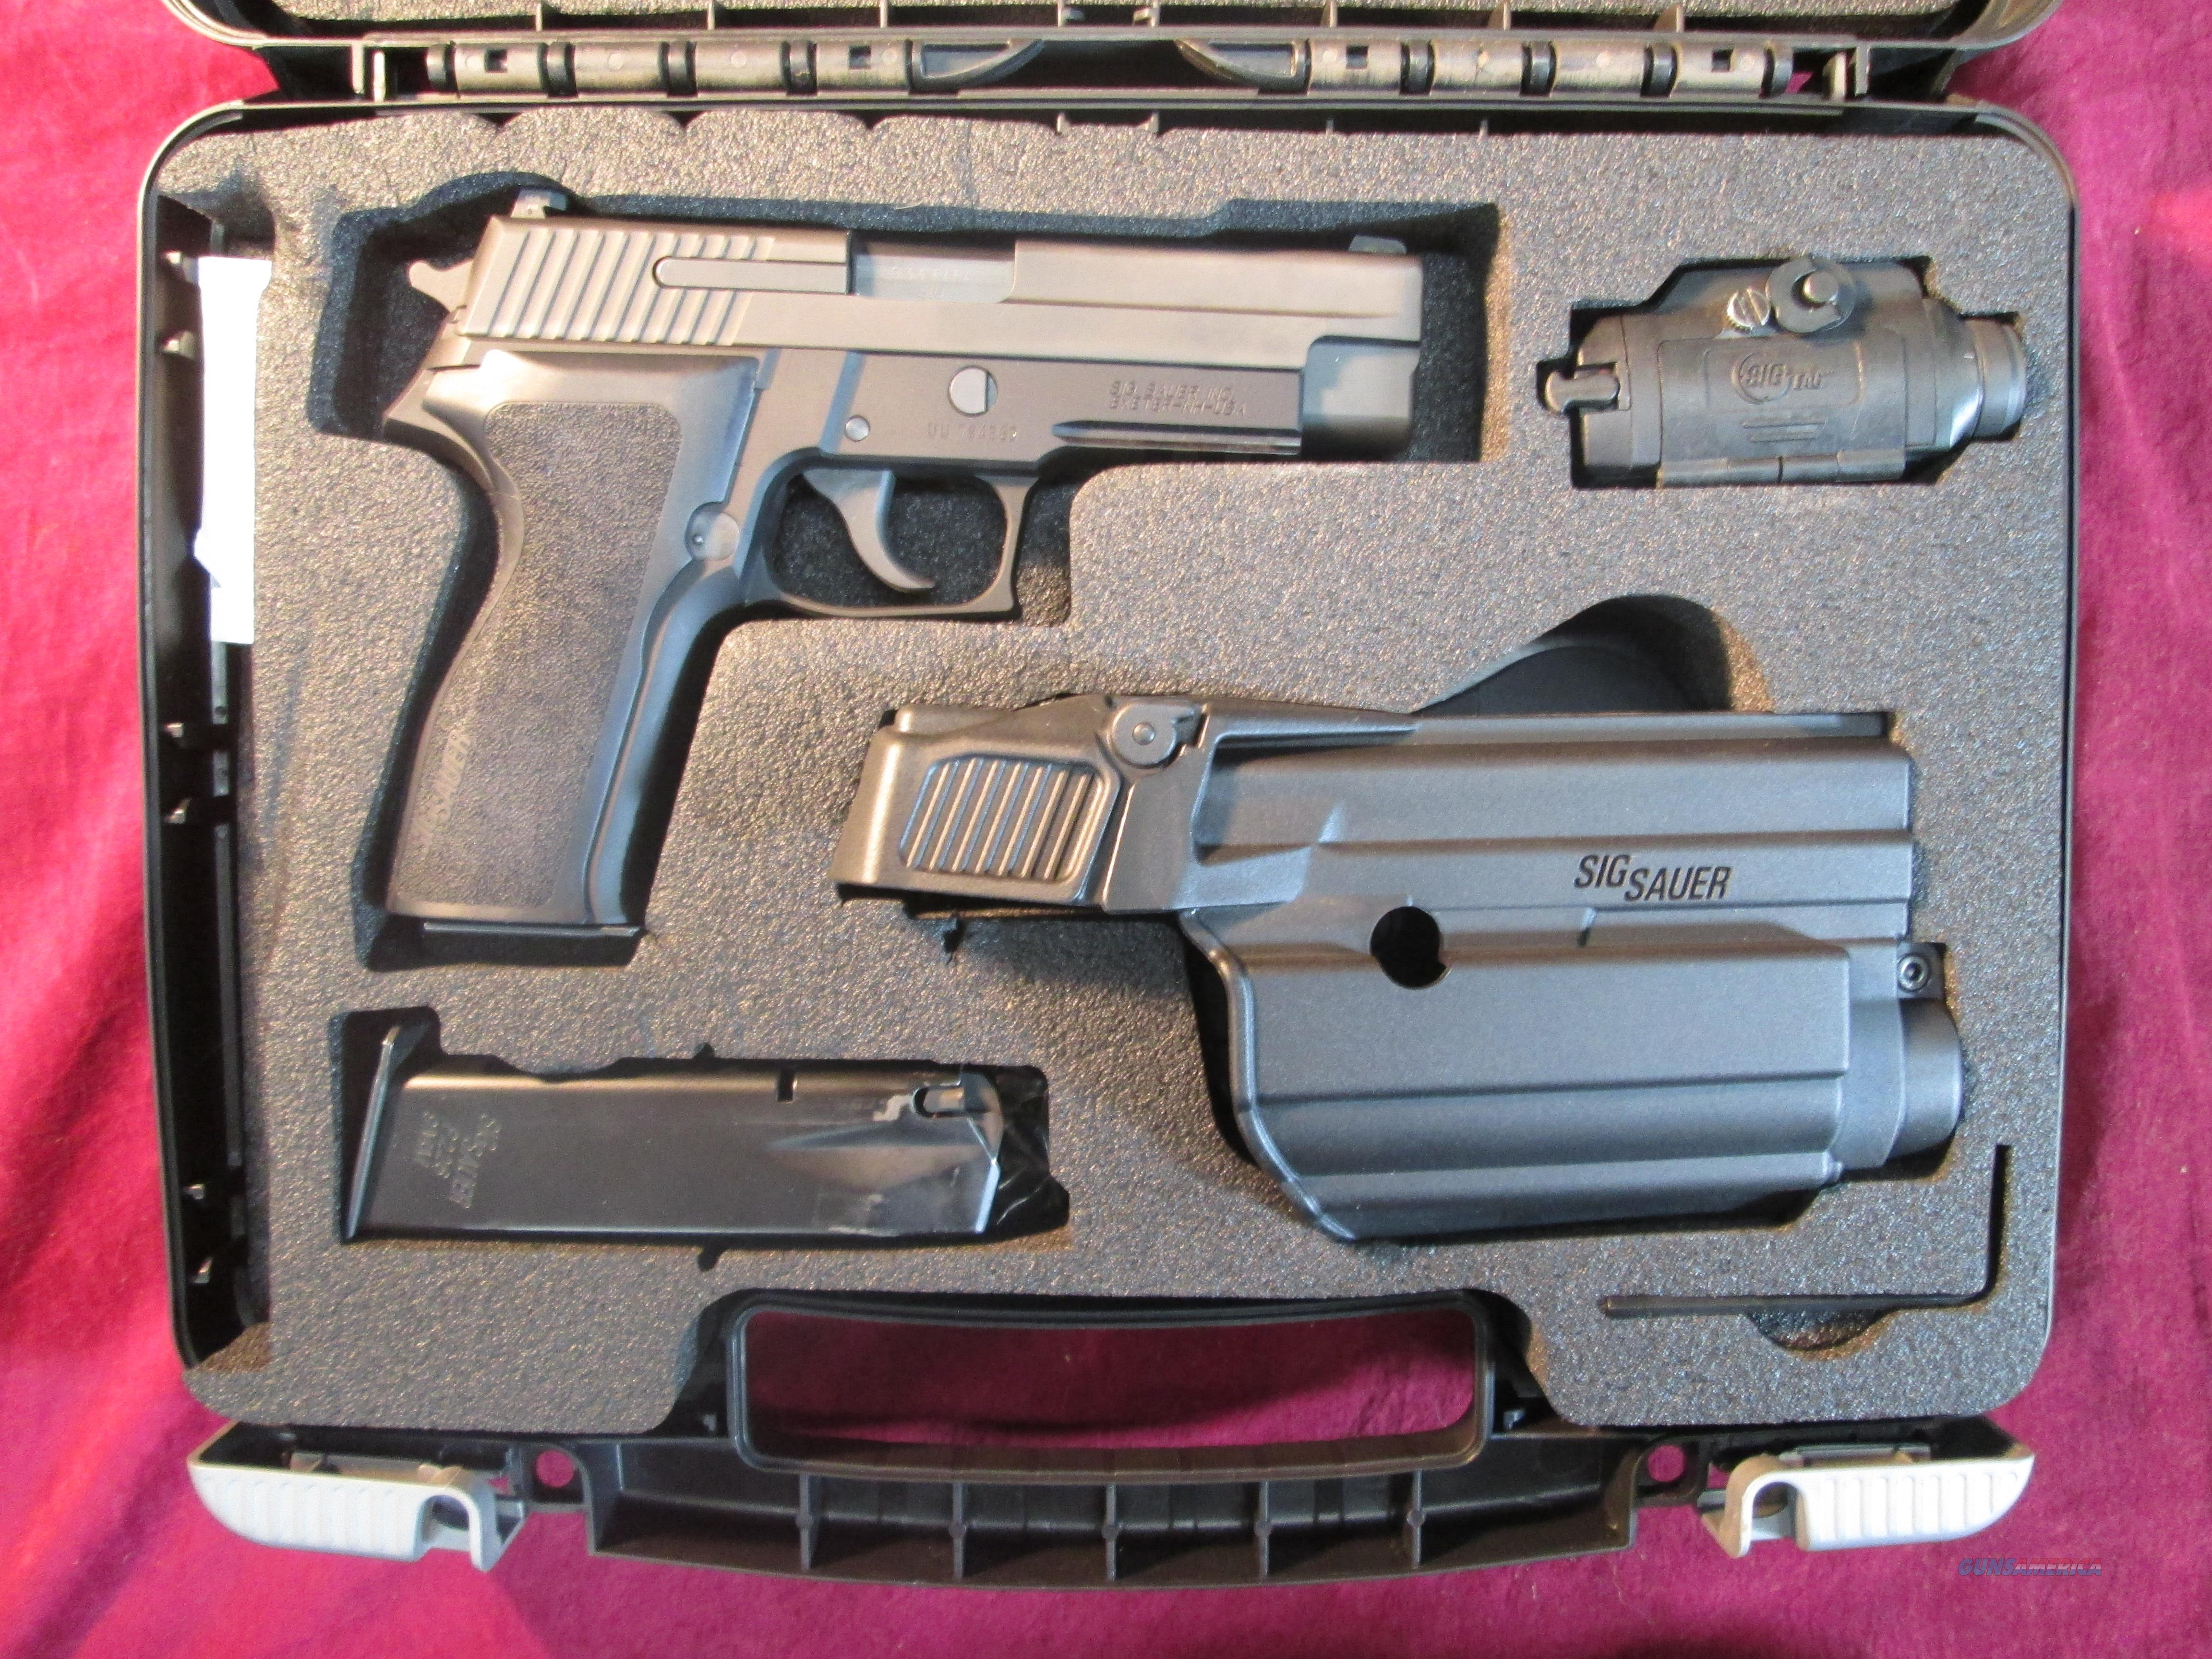 SIG SAUER P226 9MM TAC PAC W/ LASER LIGHT USED  Guns > Pistols > Sig - Sauer/Sigarms Pistols > P226